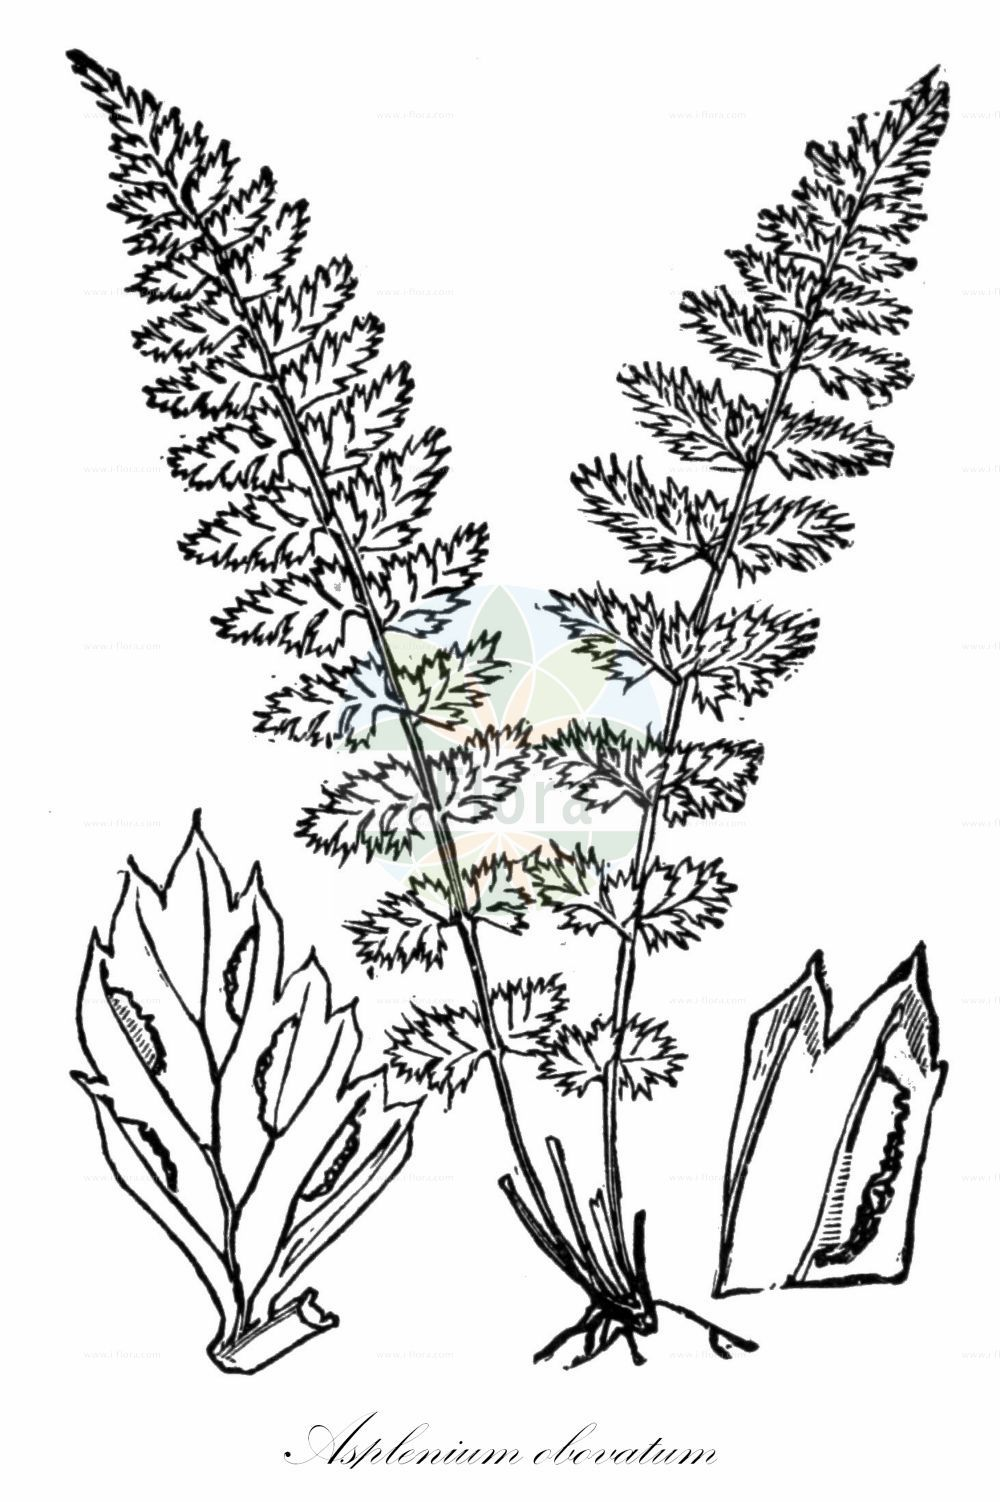 Historische Abbildung von Asplenium obovatum (Lanzettblaettriger Streifenfarn - Lanceolate Spleenwort). Das Bild zeigt Blatt, Bluete, Frucht und Same. ---- Historical Drawing of Asplenium obovatum (Lanzettblaettriger Streifenfarn - Lanceolate Spleenwort).The image is showing leaf, flower, fruit and seed. (Asplenium obovatum,Lanzettblaettriger Streifenfarn,Lanceolate Spleenwort,Asplenium,Streifenfarn,Spleenwort,Aspleniaceae,Streifenfarngewaechse,Spleenworts,Blatt,Bluete,Frucht,Same,leaf,flower,fruit,seed,Fitch et al. (1880))